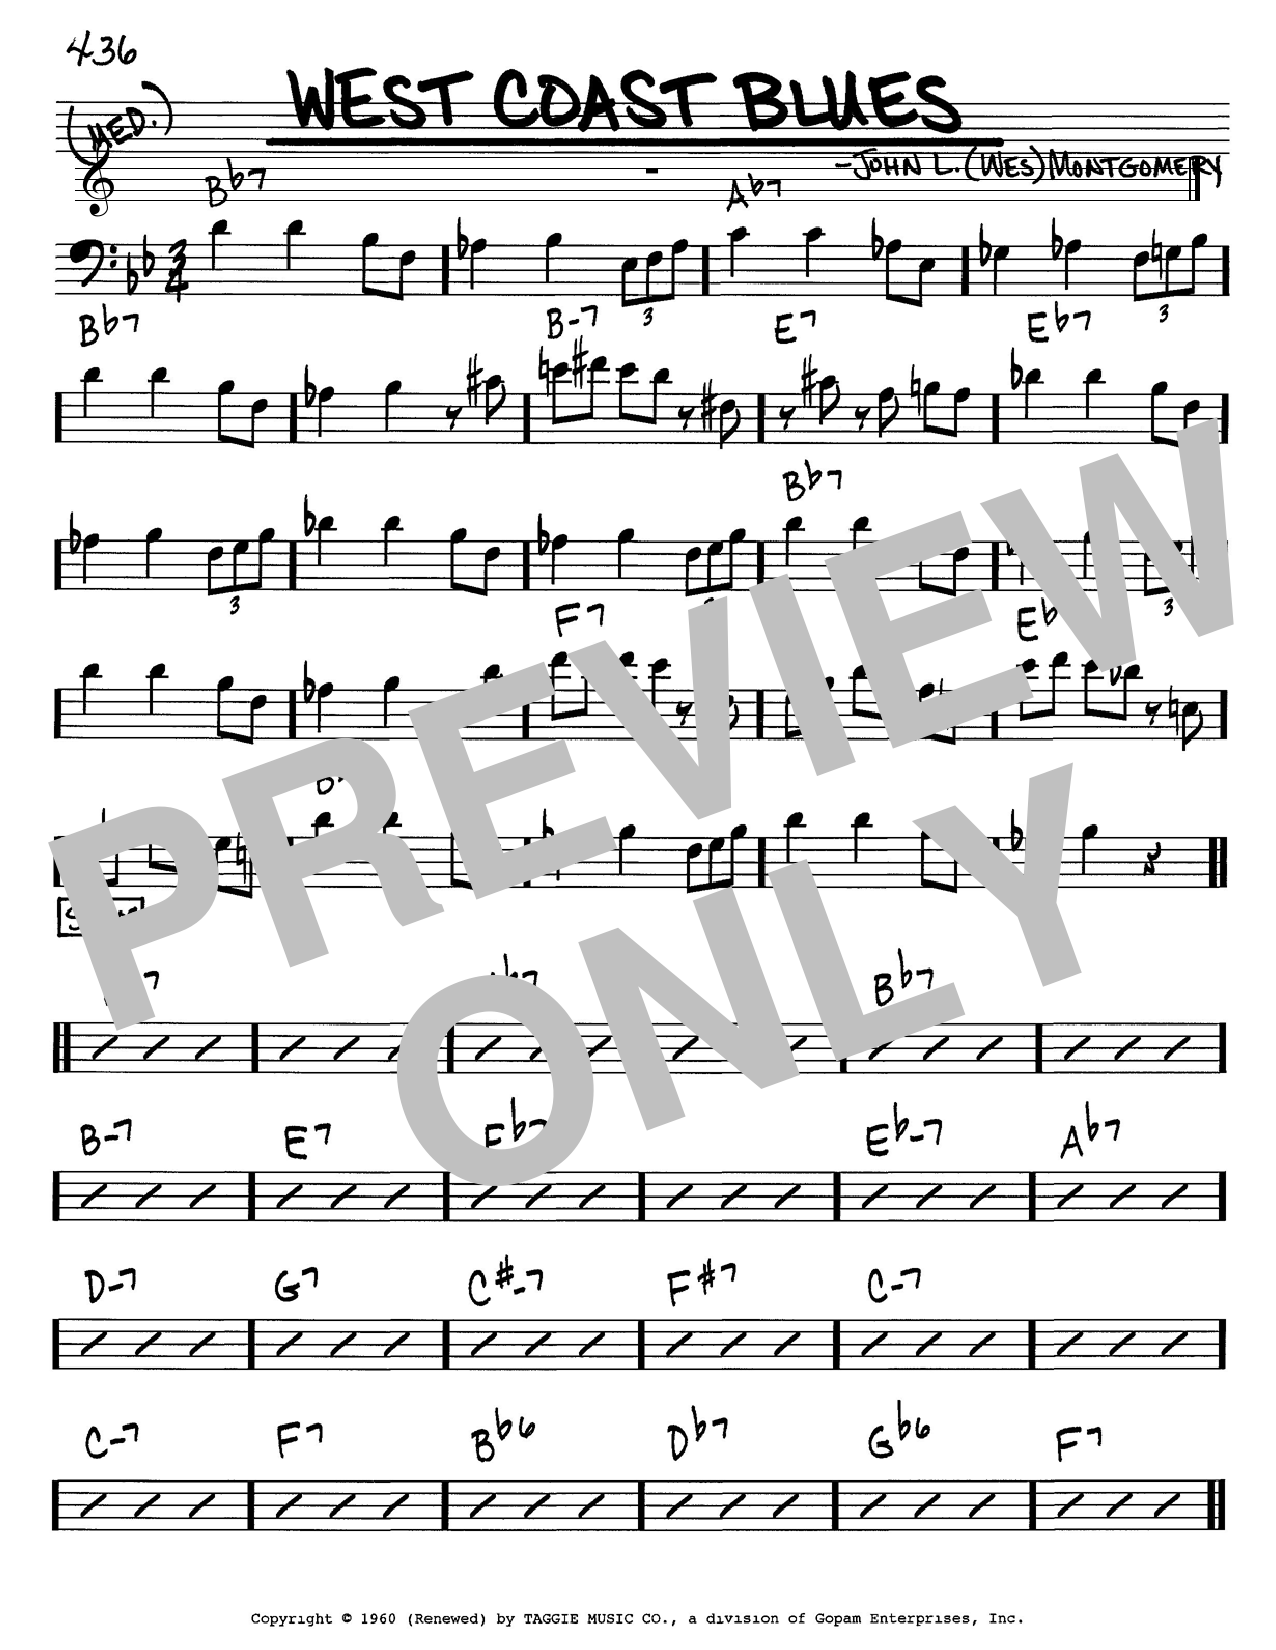 Wes Montgomery West Coast Blues sheet music notes and chords. Download Printable PDF.